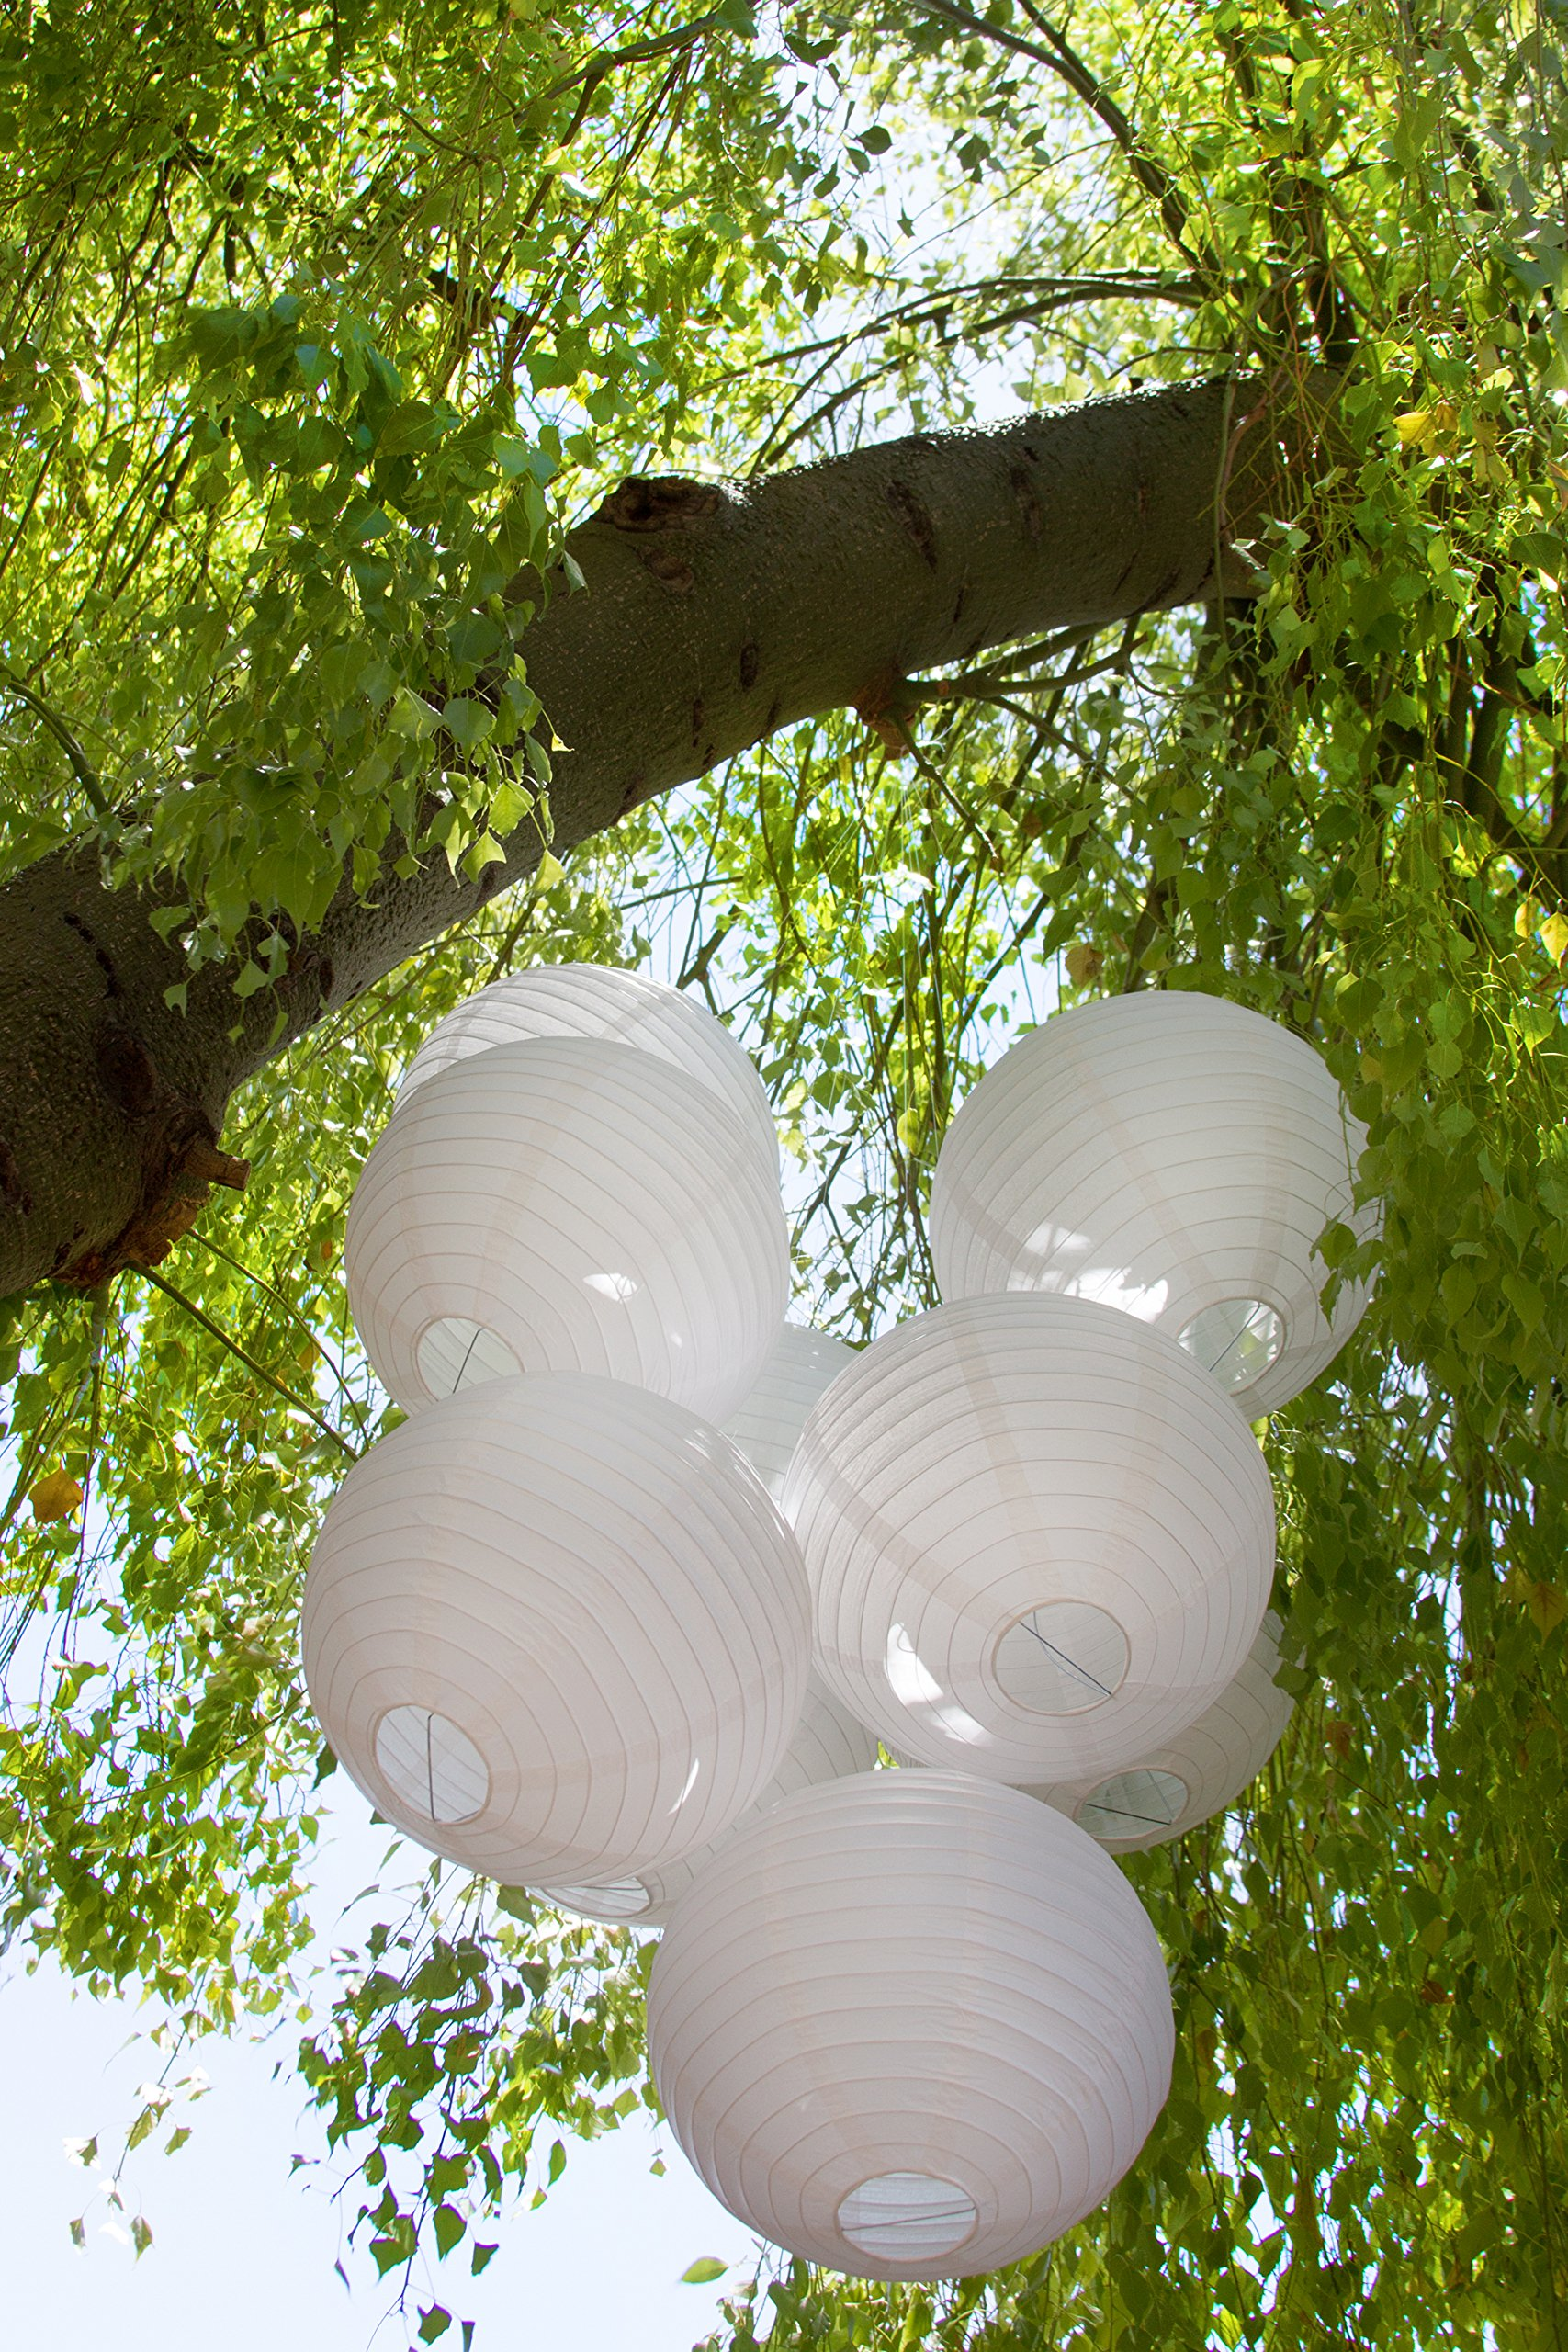 Just Artifacts 12inch Decorative Round Chinese Paper Lanterns 10pcs w/ 12pc LED Lights and Clear String (Color: White)